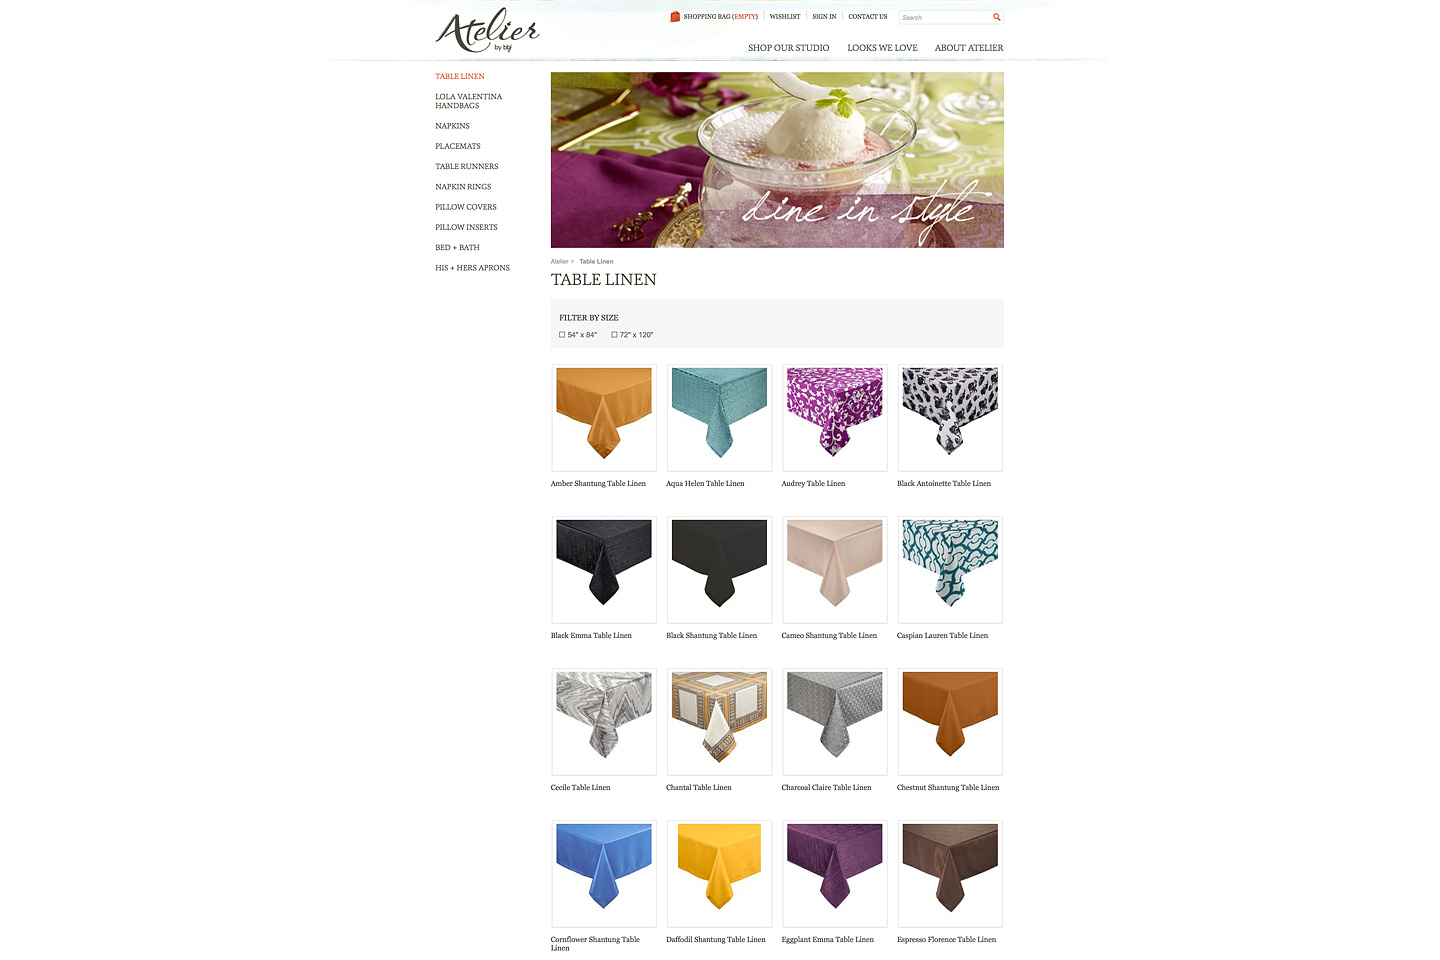 a screen capture of the atelier by bbj table linen landing page, featuring rows of colorful thumbnails depicting various table linen swatches